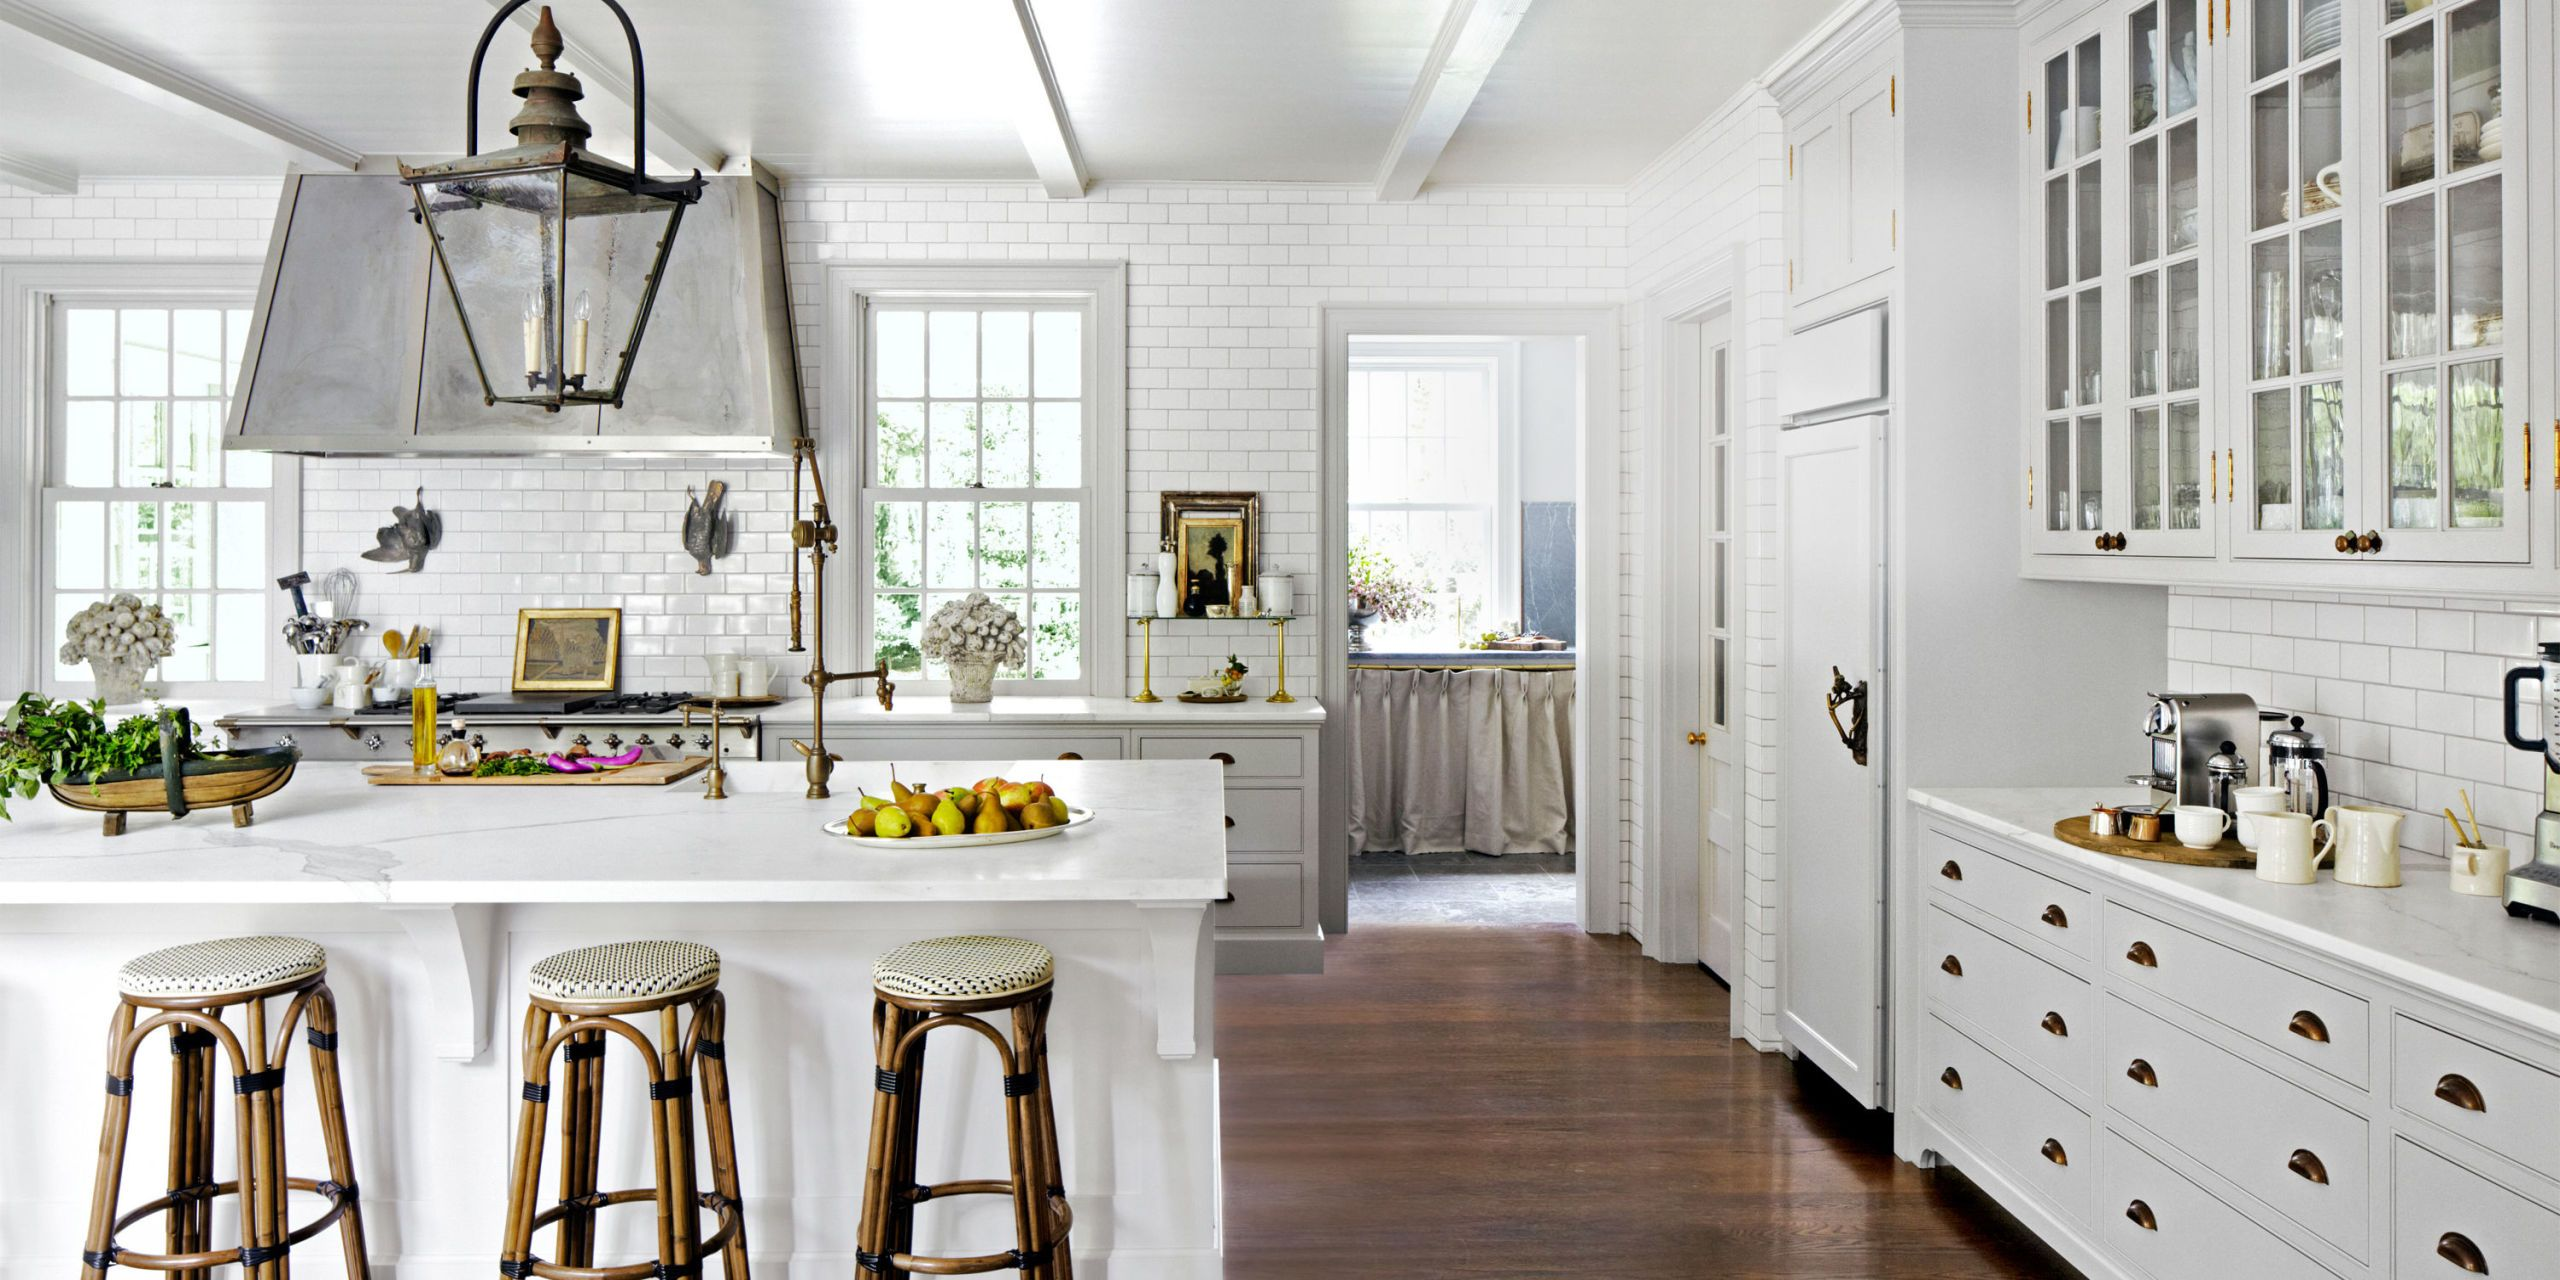 Wonderful Amazing Ideas For Using White To Spruce Up Your Kitchen Decor And Take It  From Drab To Dazzling.